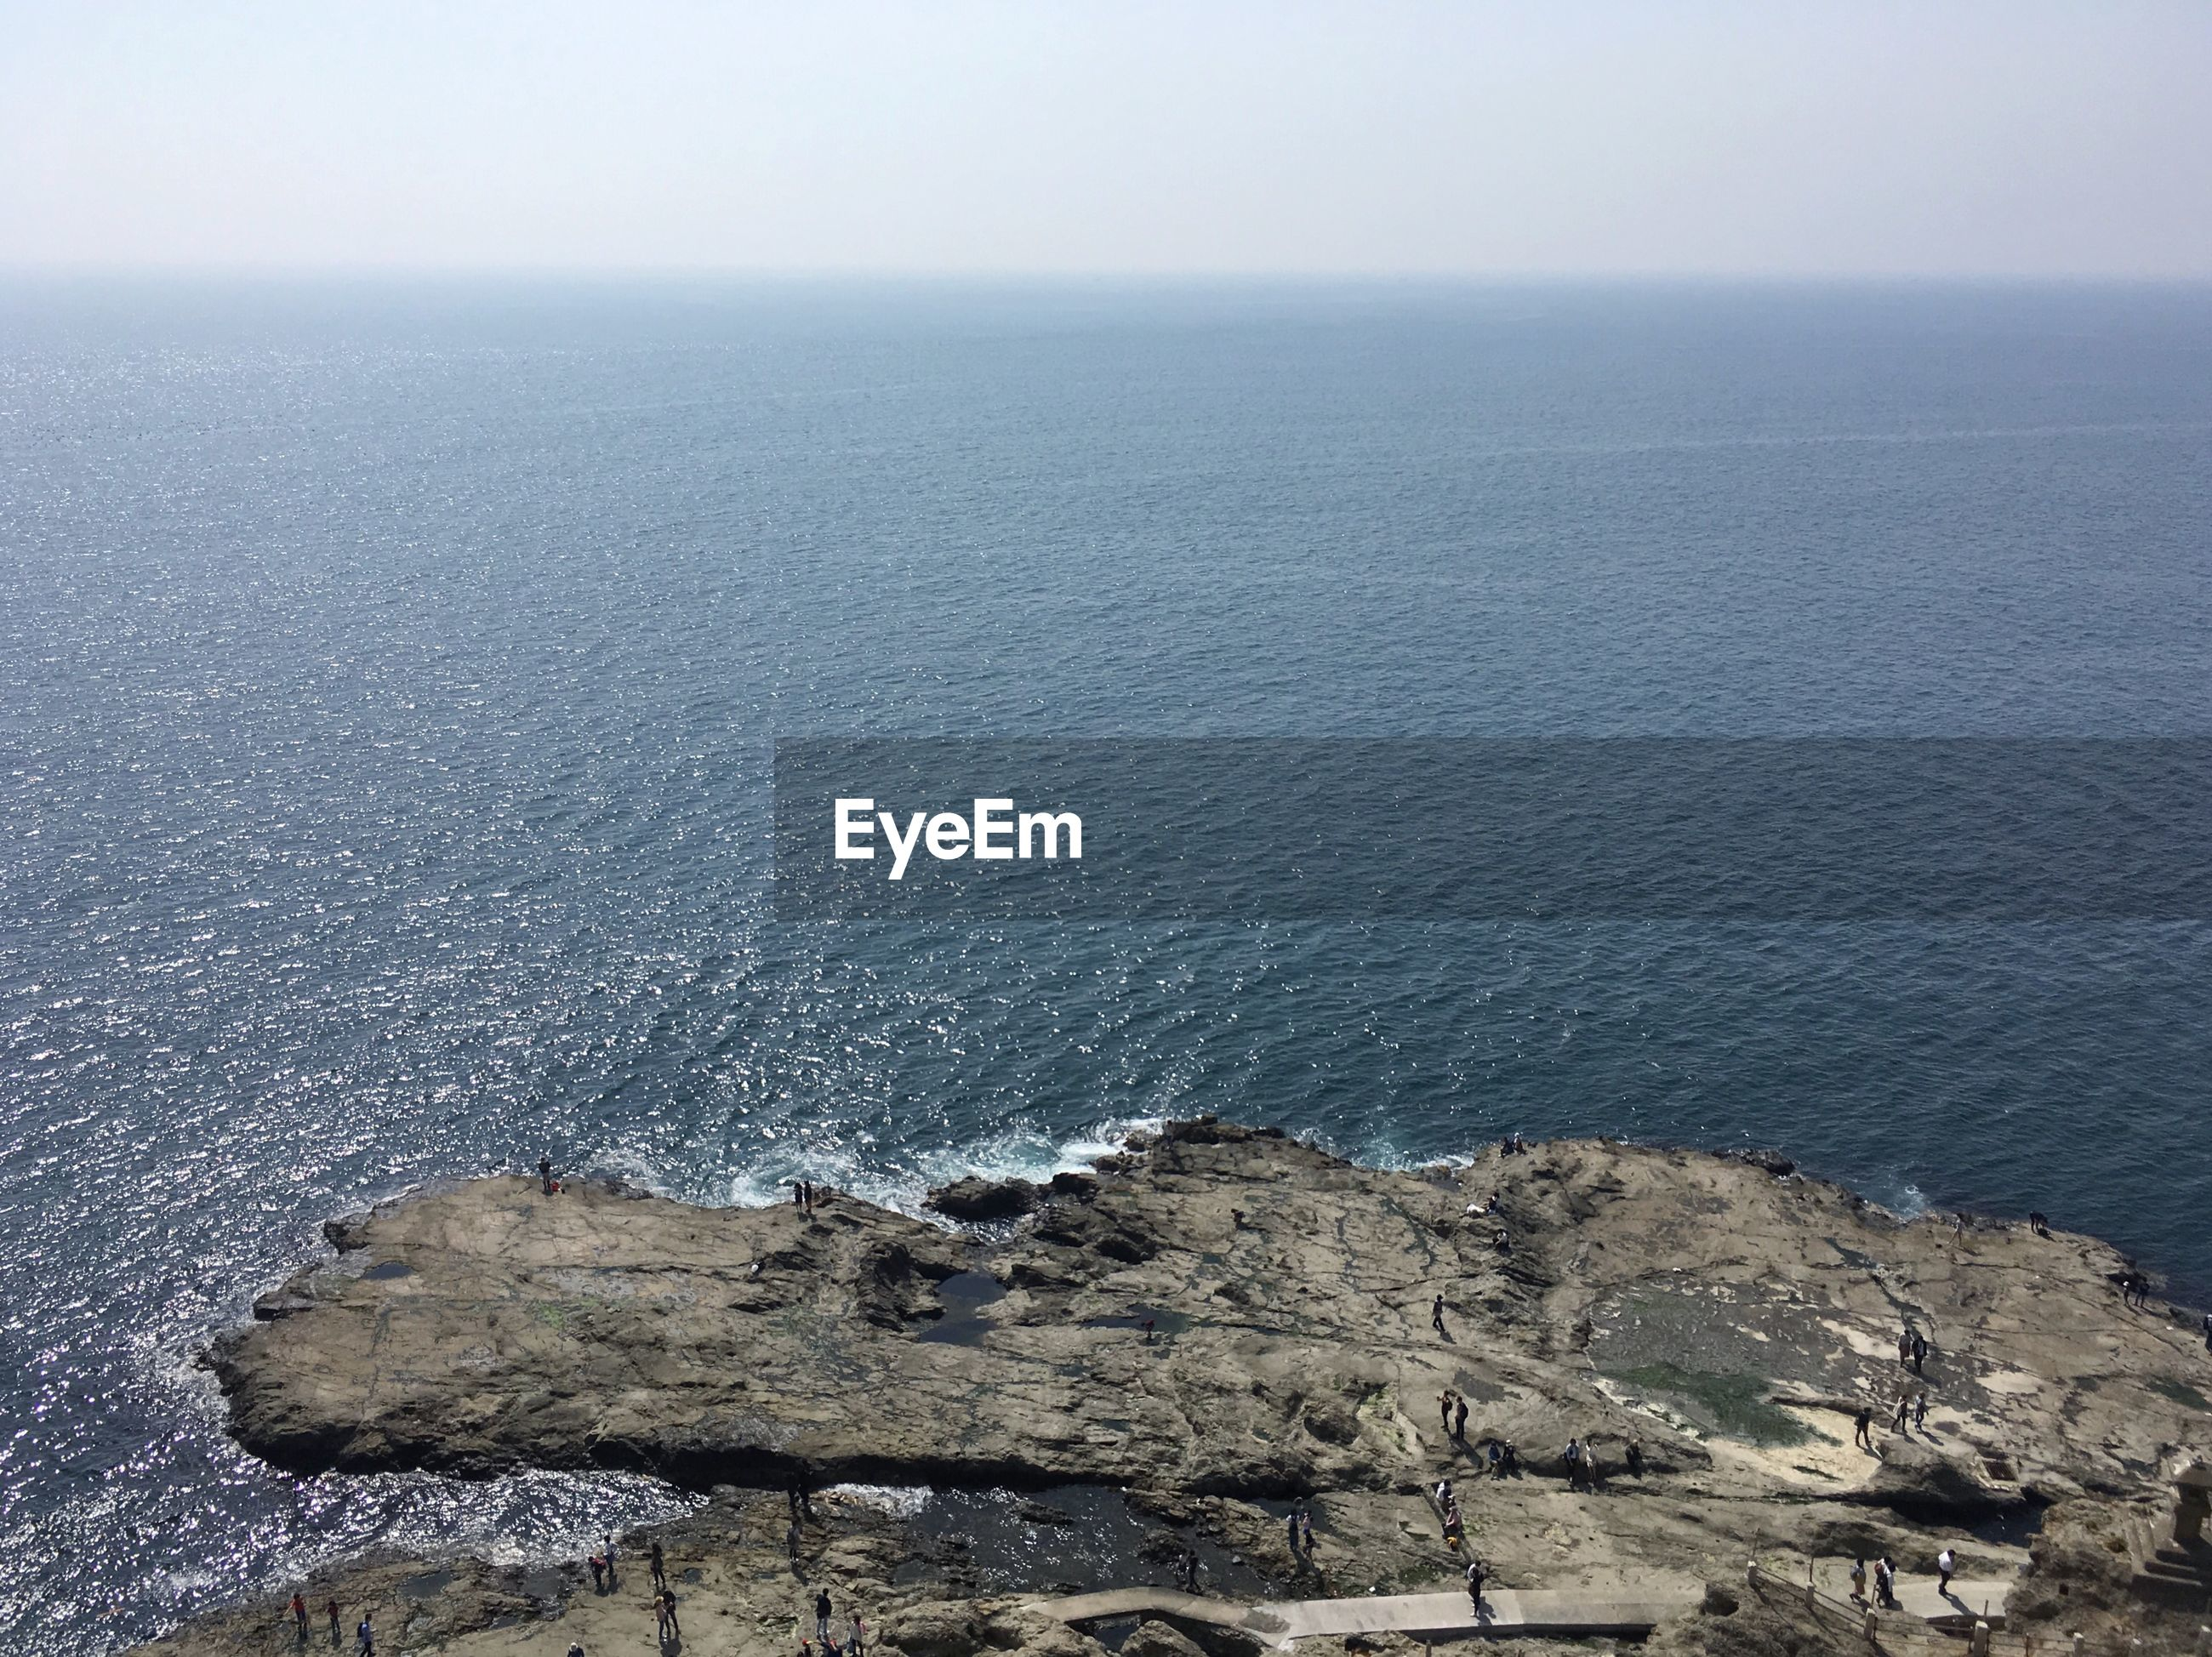 sea, water, scenics - nature, beauty in nature, horizon, horizon over water, sky, rock, tranquility, tranquil scene, nature, no people, rock - object, solid, day, non-urban scene, idyllic, land, high angle view, outdoors, rocky coastline